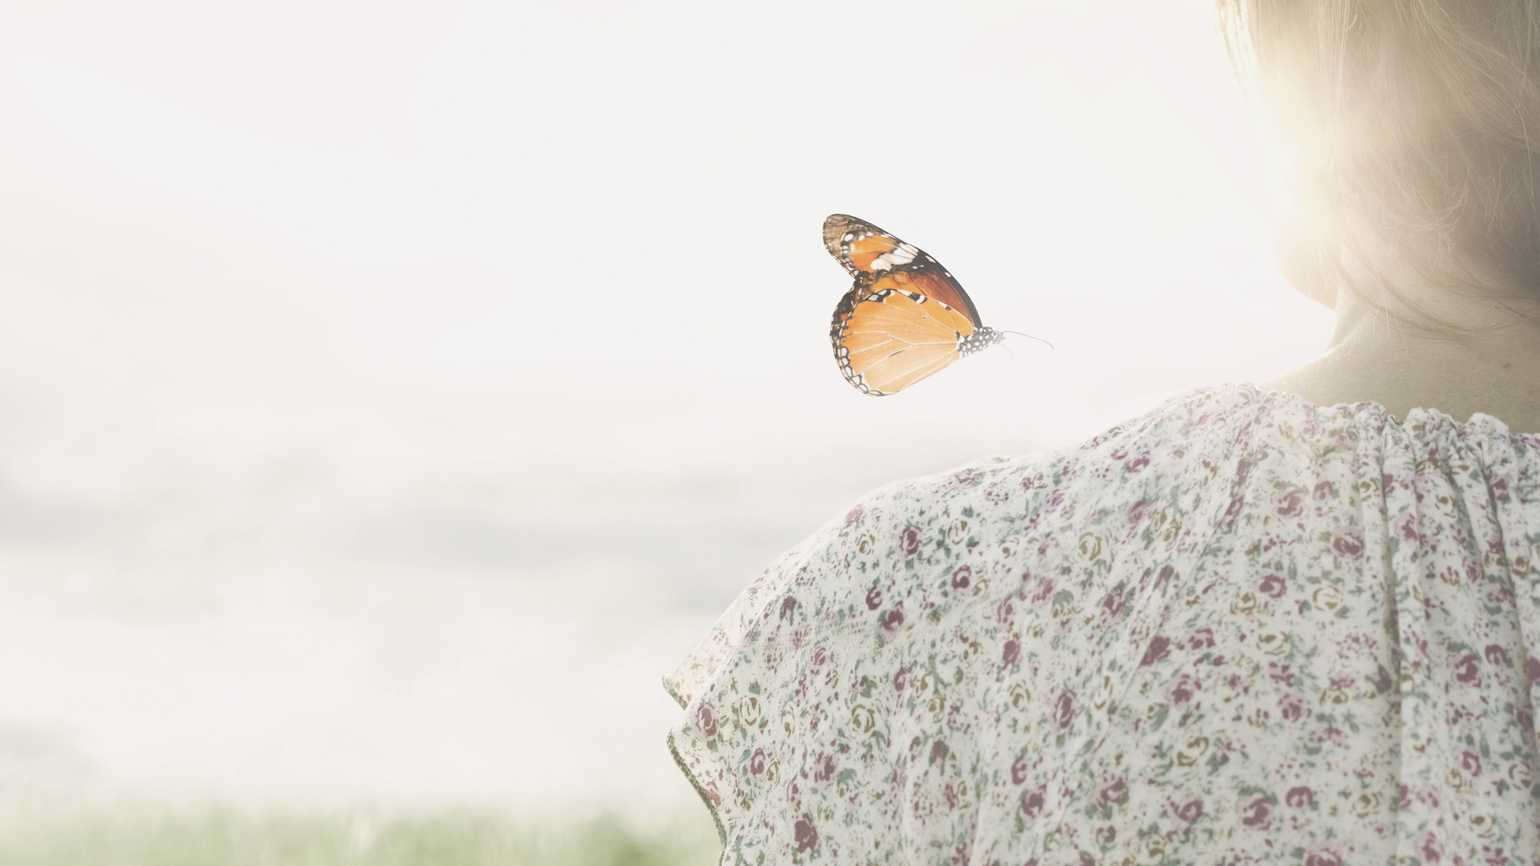 A butterfly hovering over a girl's shoulder.